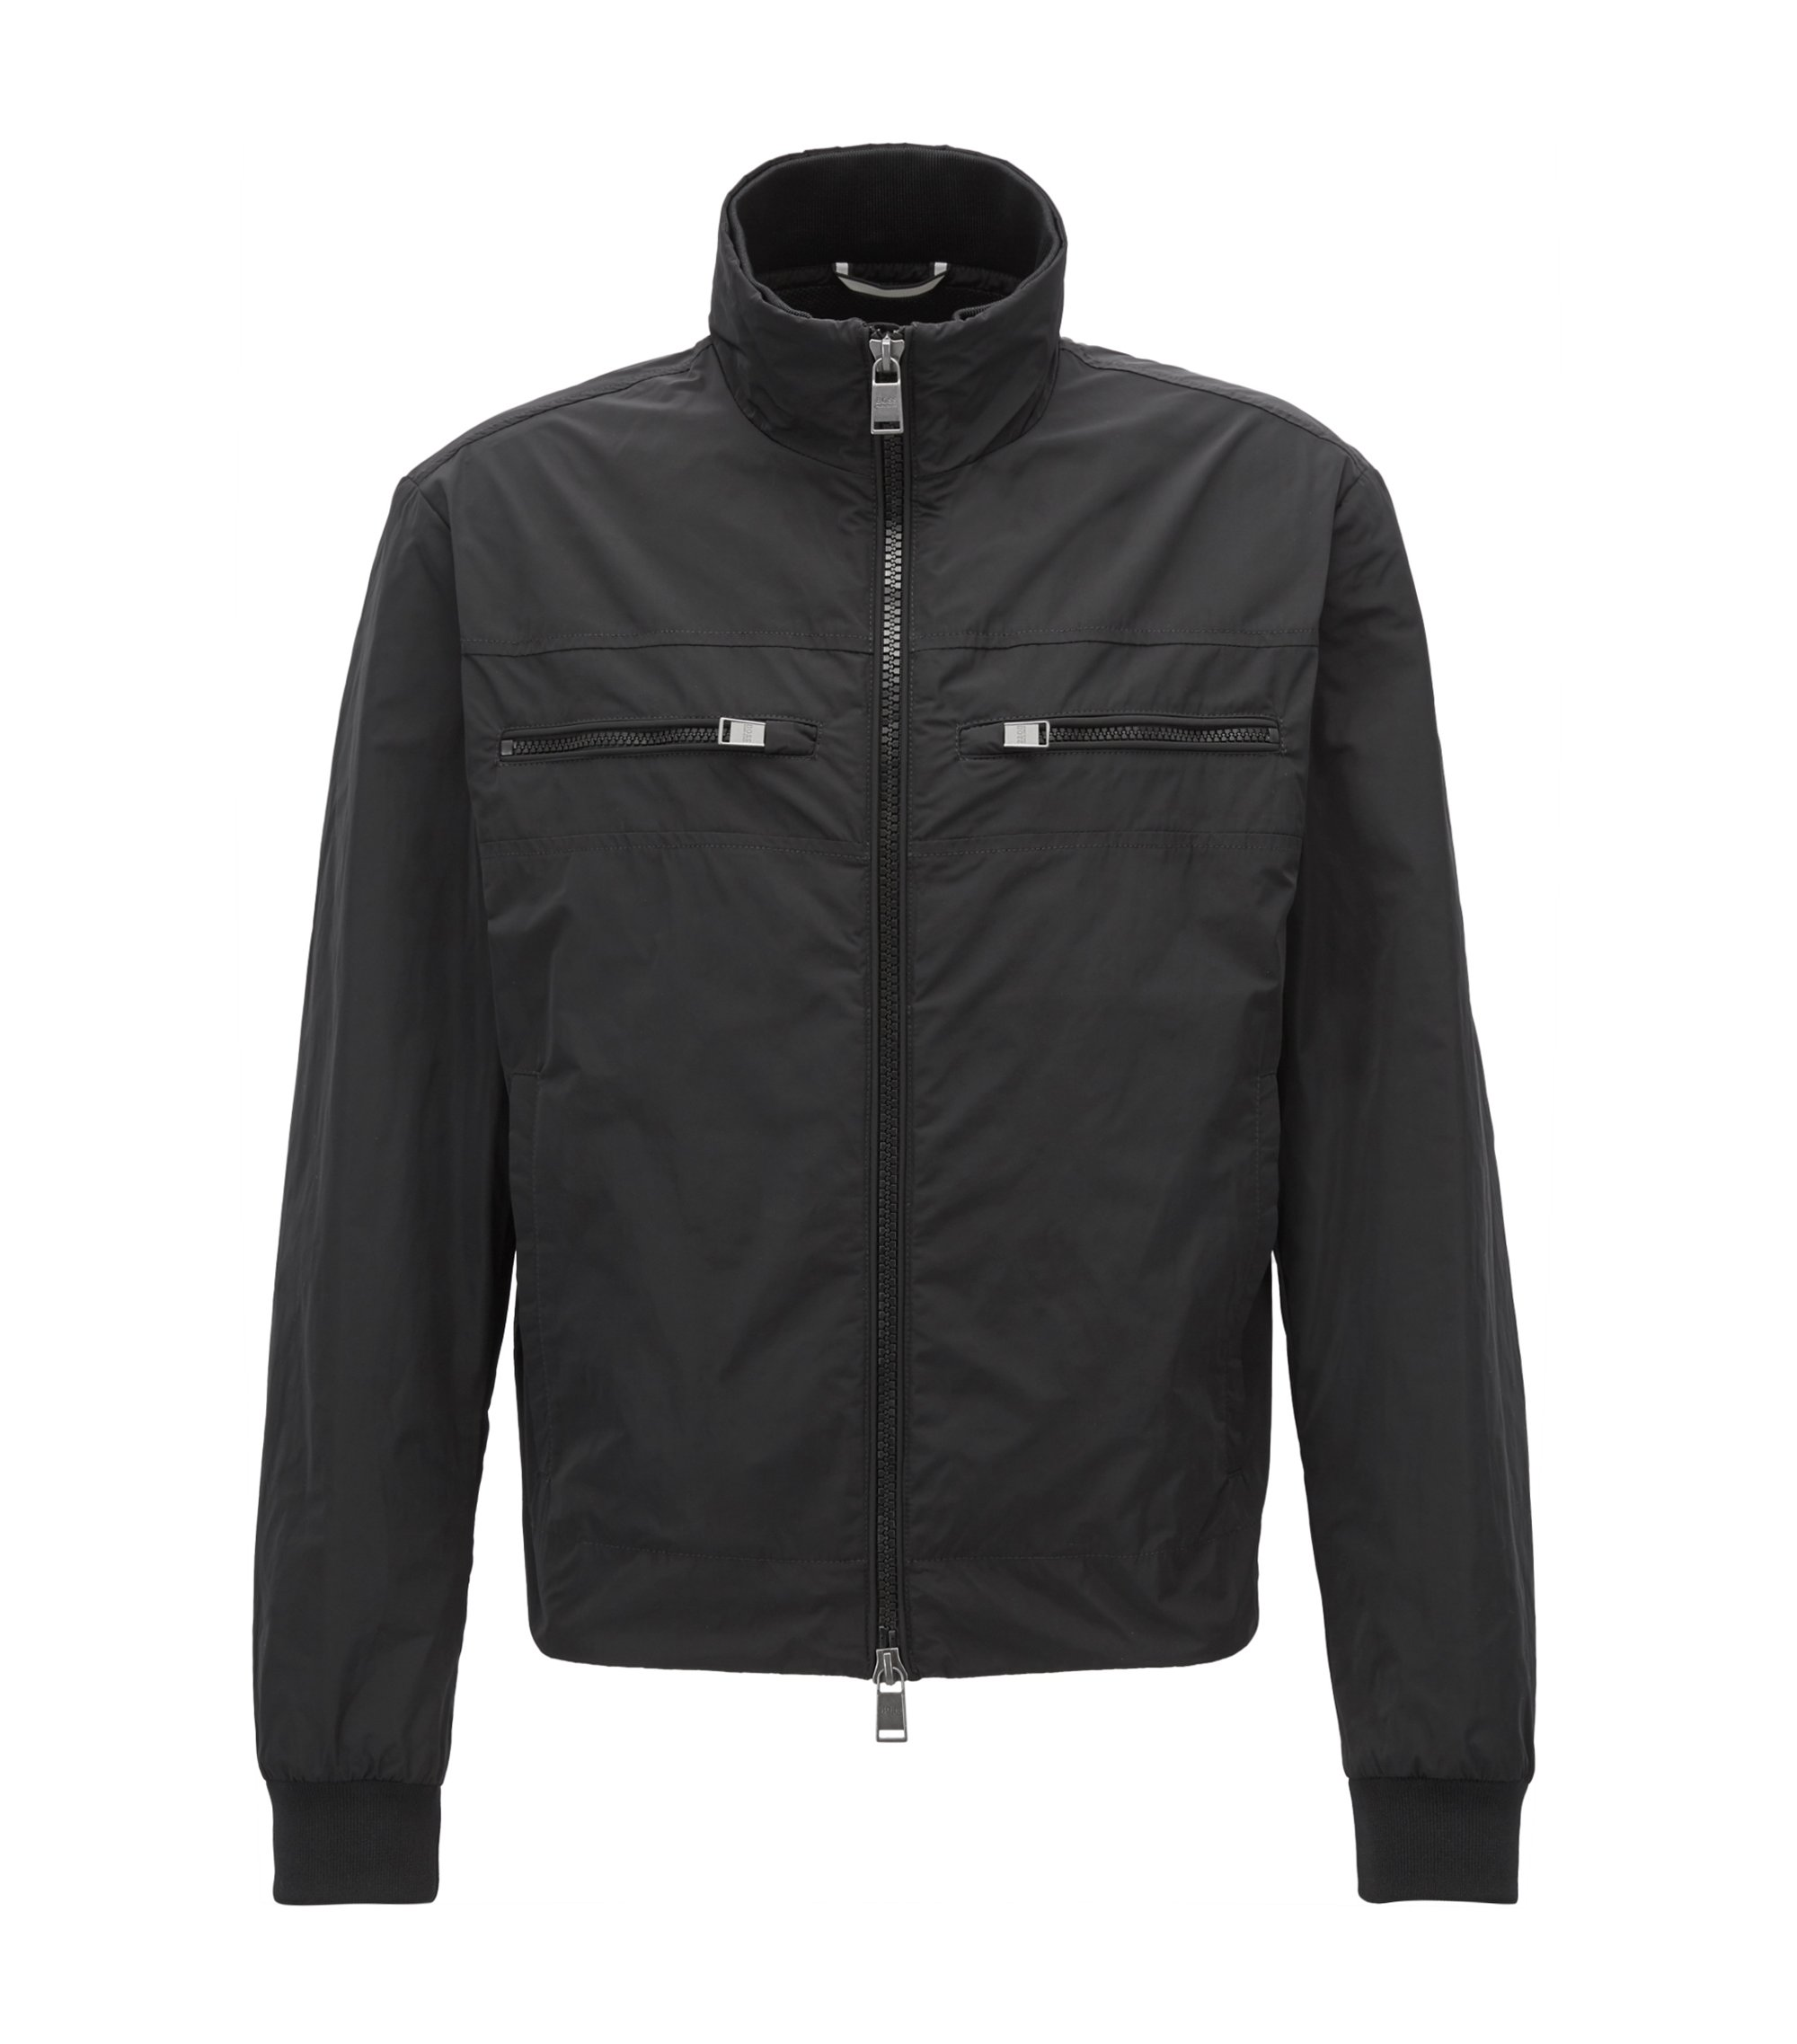 Blouson bomber jacket in water-repellent technical fabric, Black